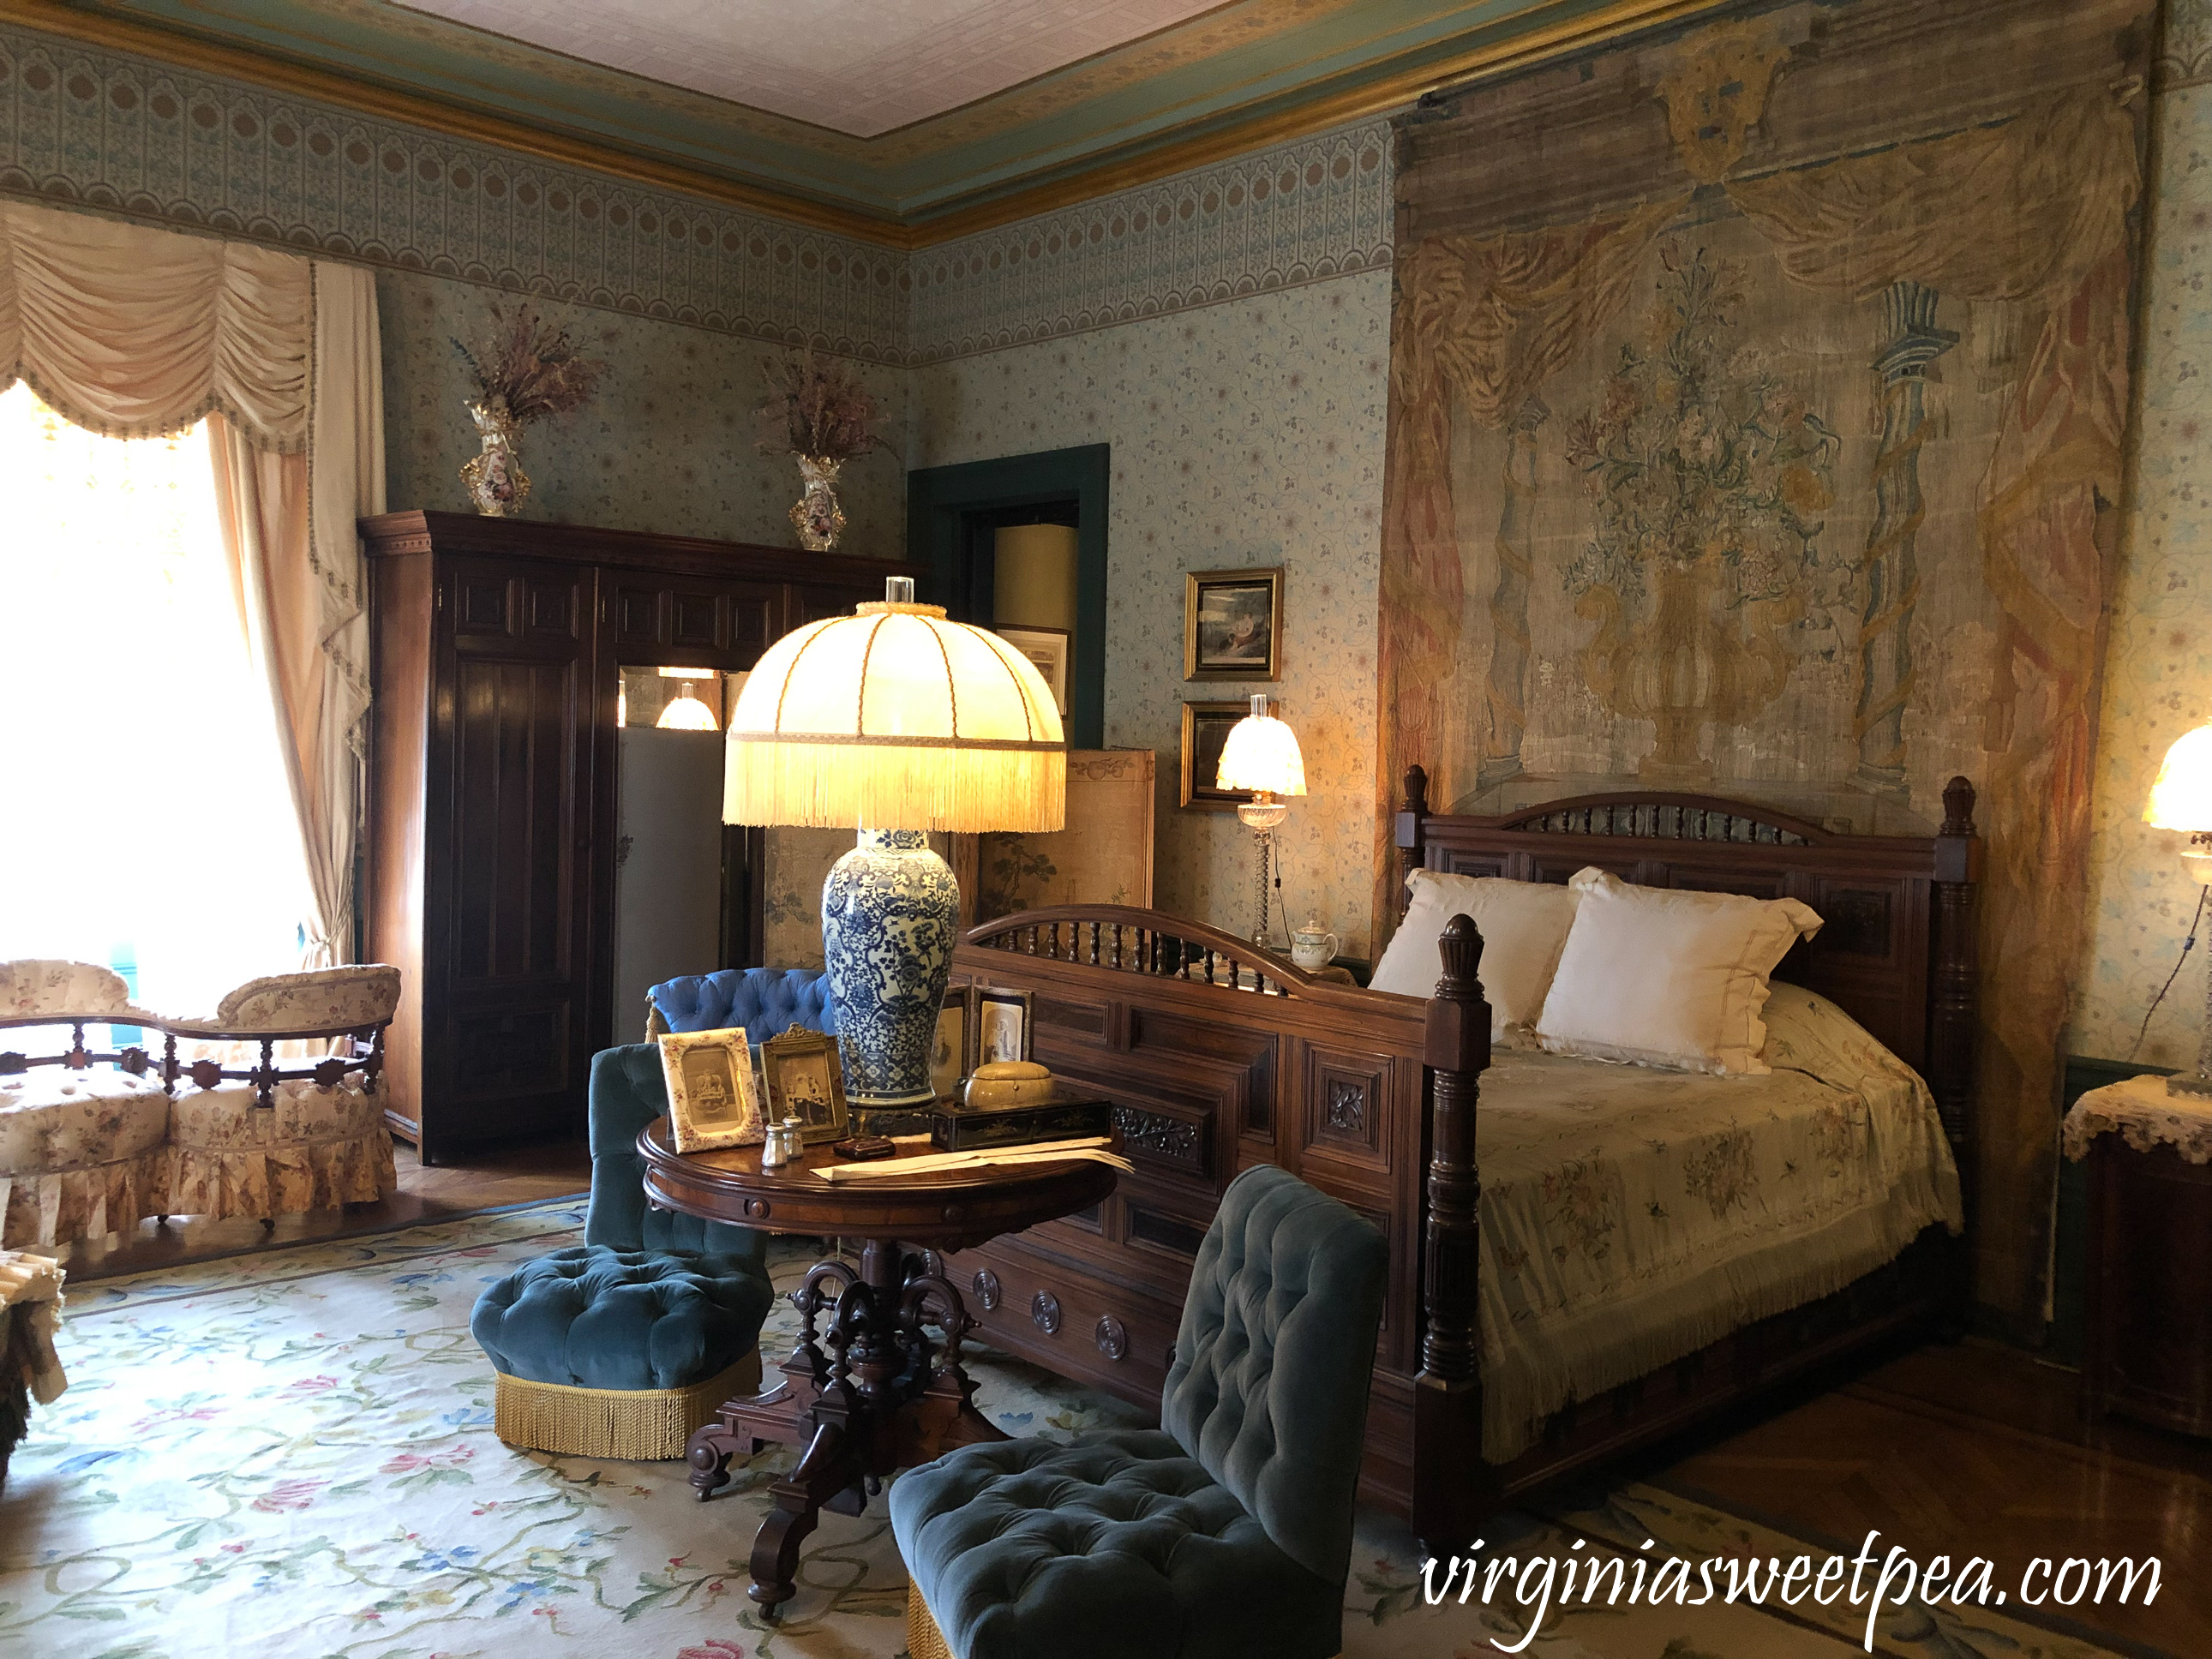 Bedroom at Chateau-sur-Mer in Newport, RI